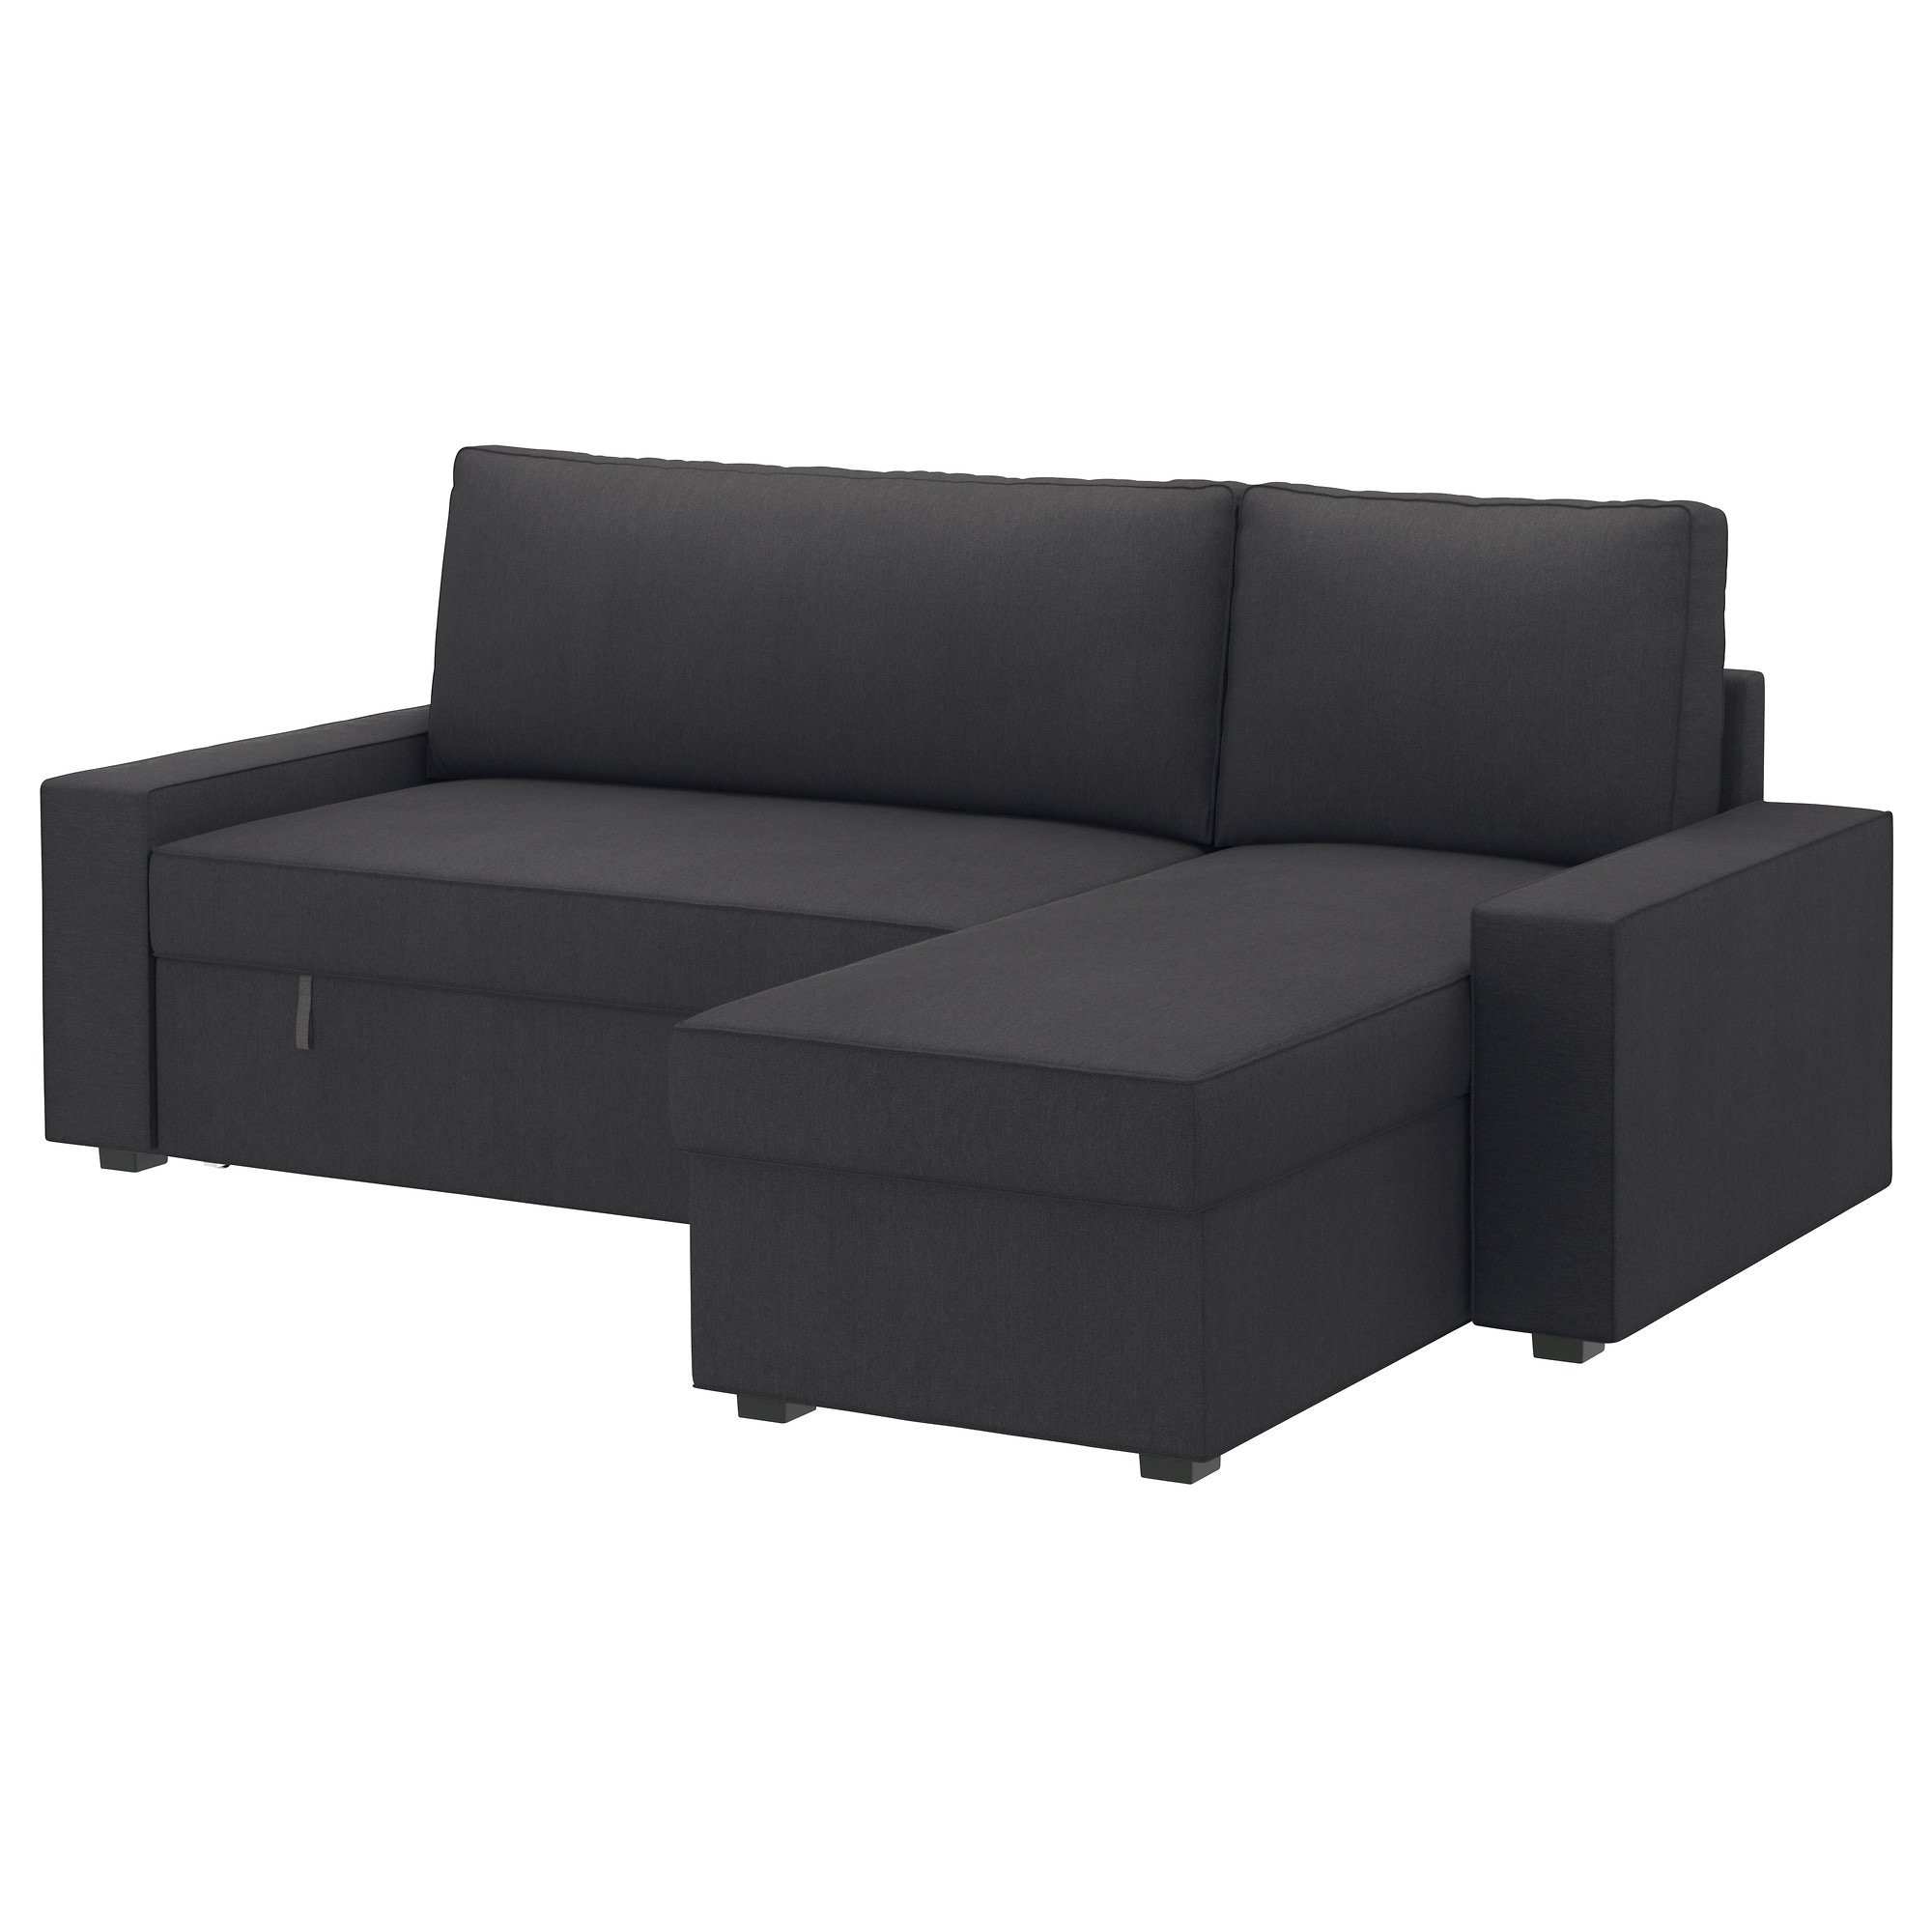 VILASUND Sofa bed with chaise longue IKEA